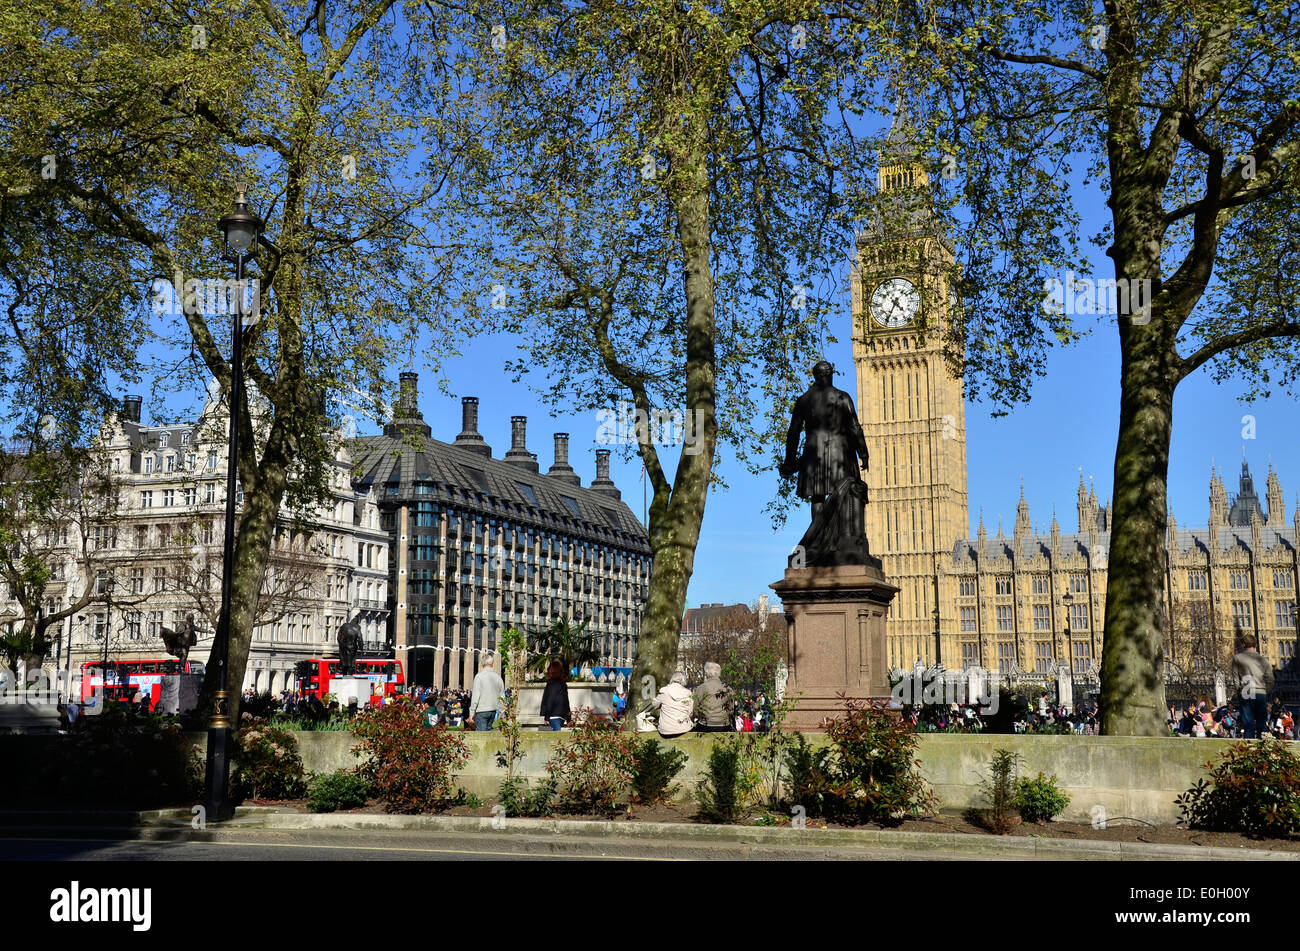 Big Ben and The Houses of Parliament, Parliament Square, London, England - Stock Image